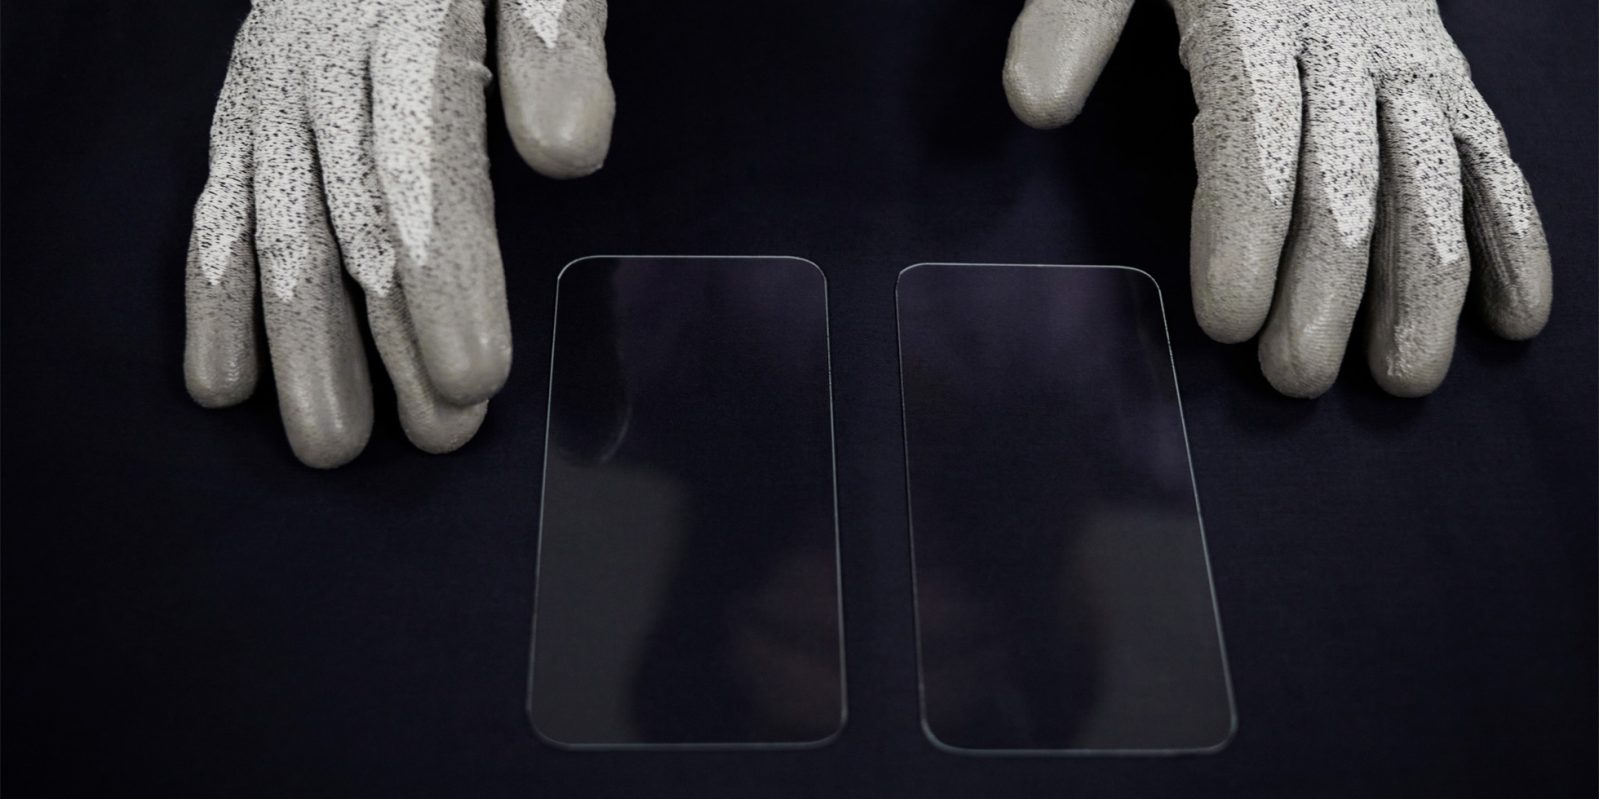 Apple increases Corning manufacturing investment, maker of iPhone 12 Ceramic Shield glass